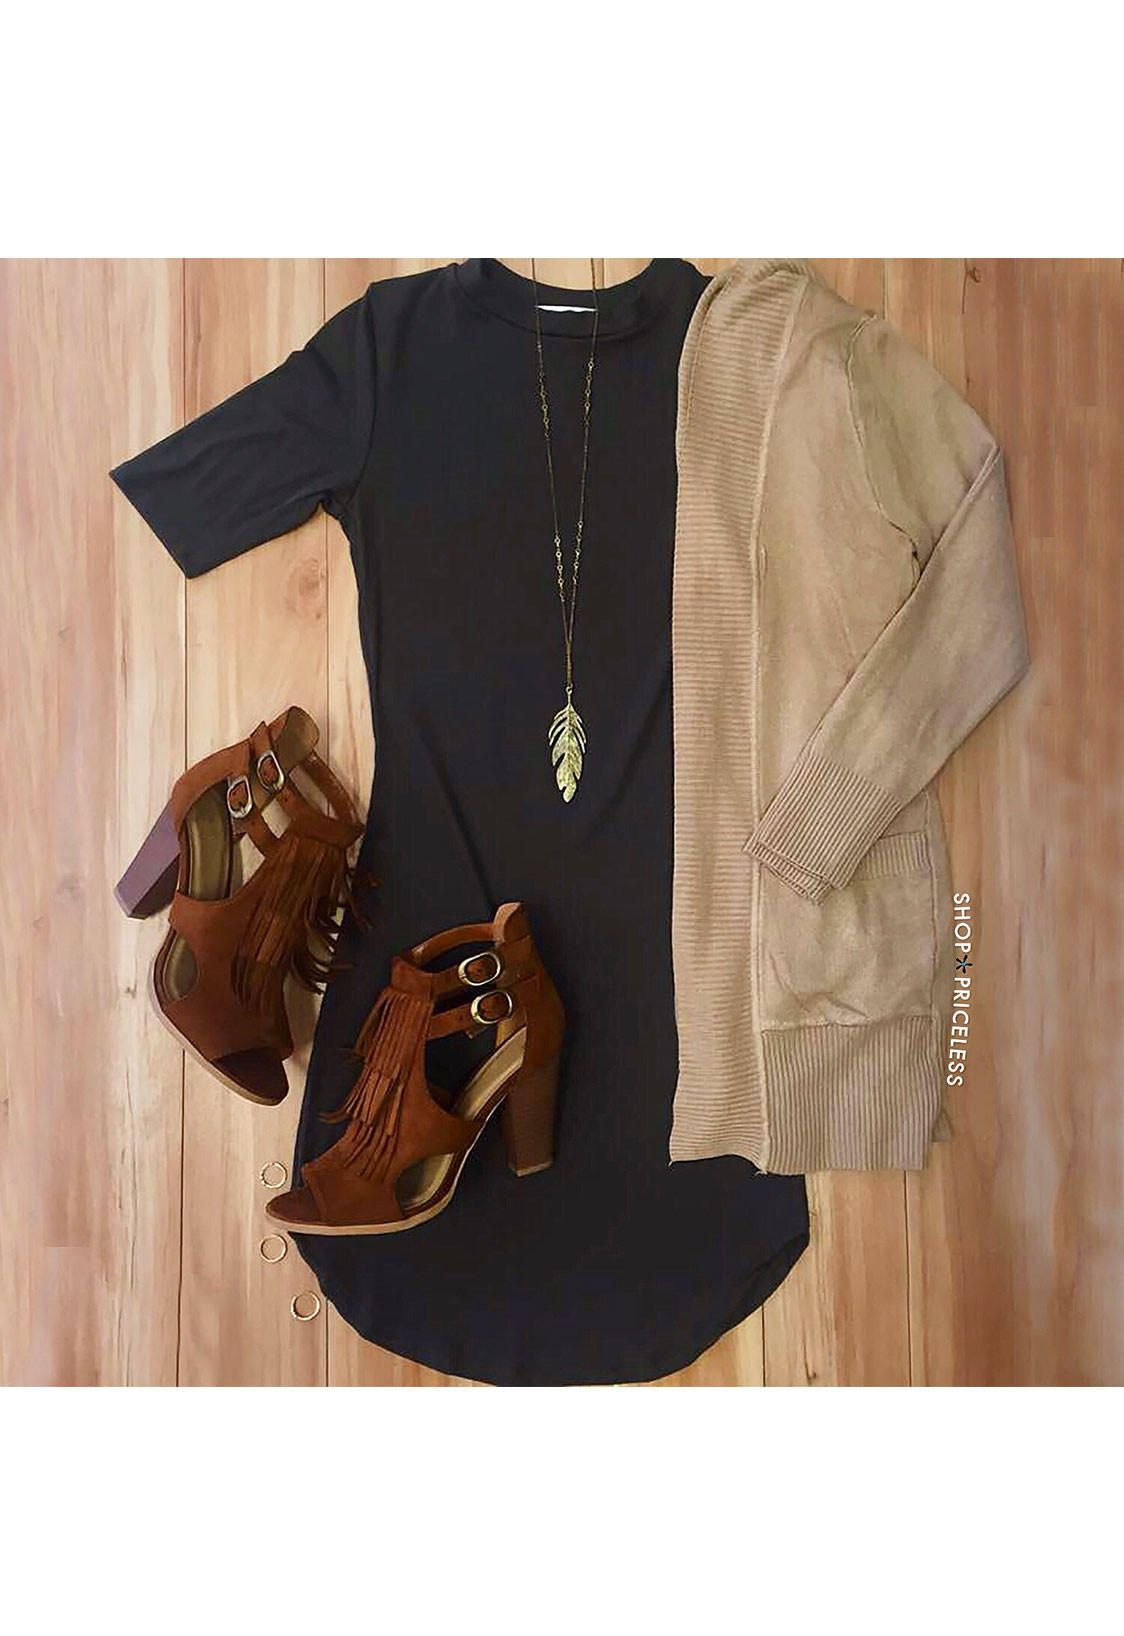 Lenora Dress - Olive from Shop Priceless. Shop more products from Shop Priceless on Wanelo.